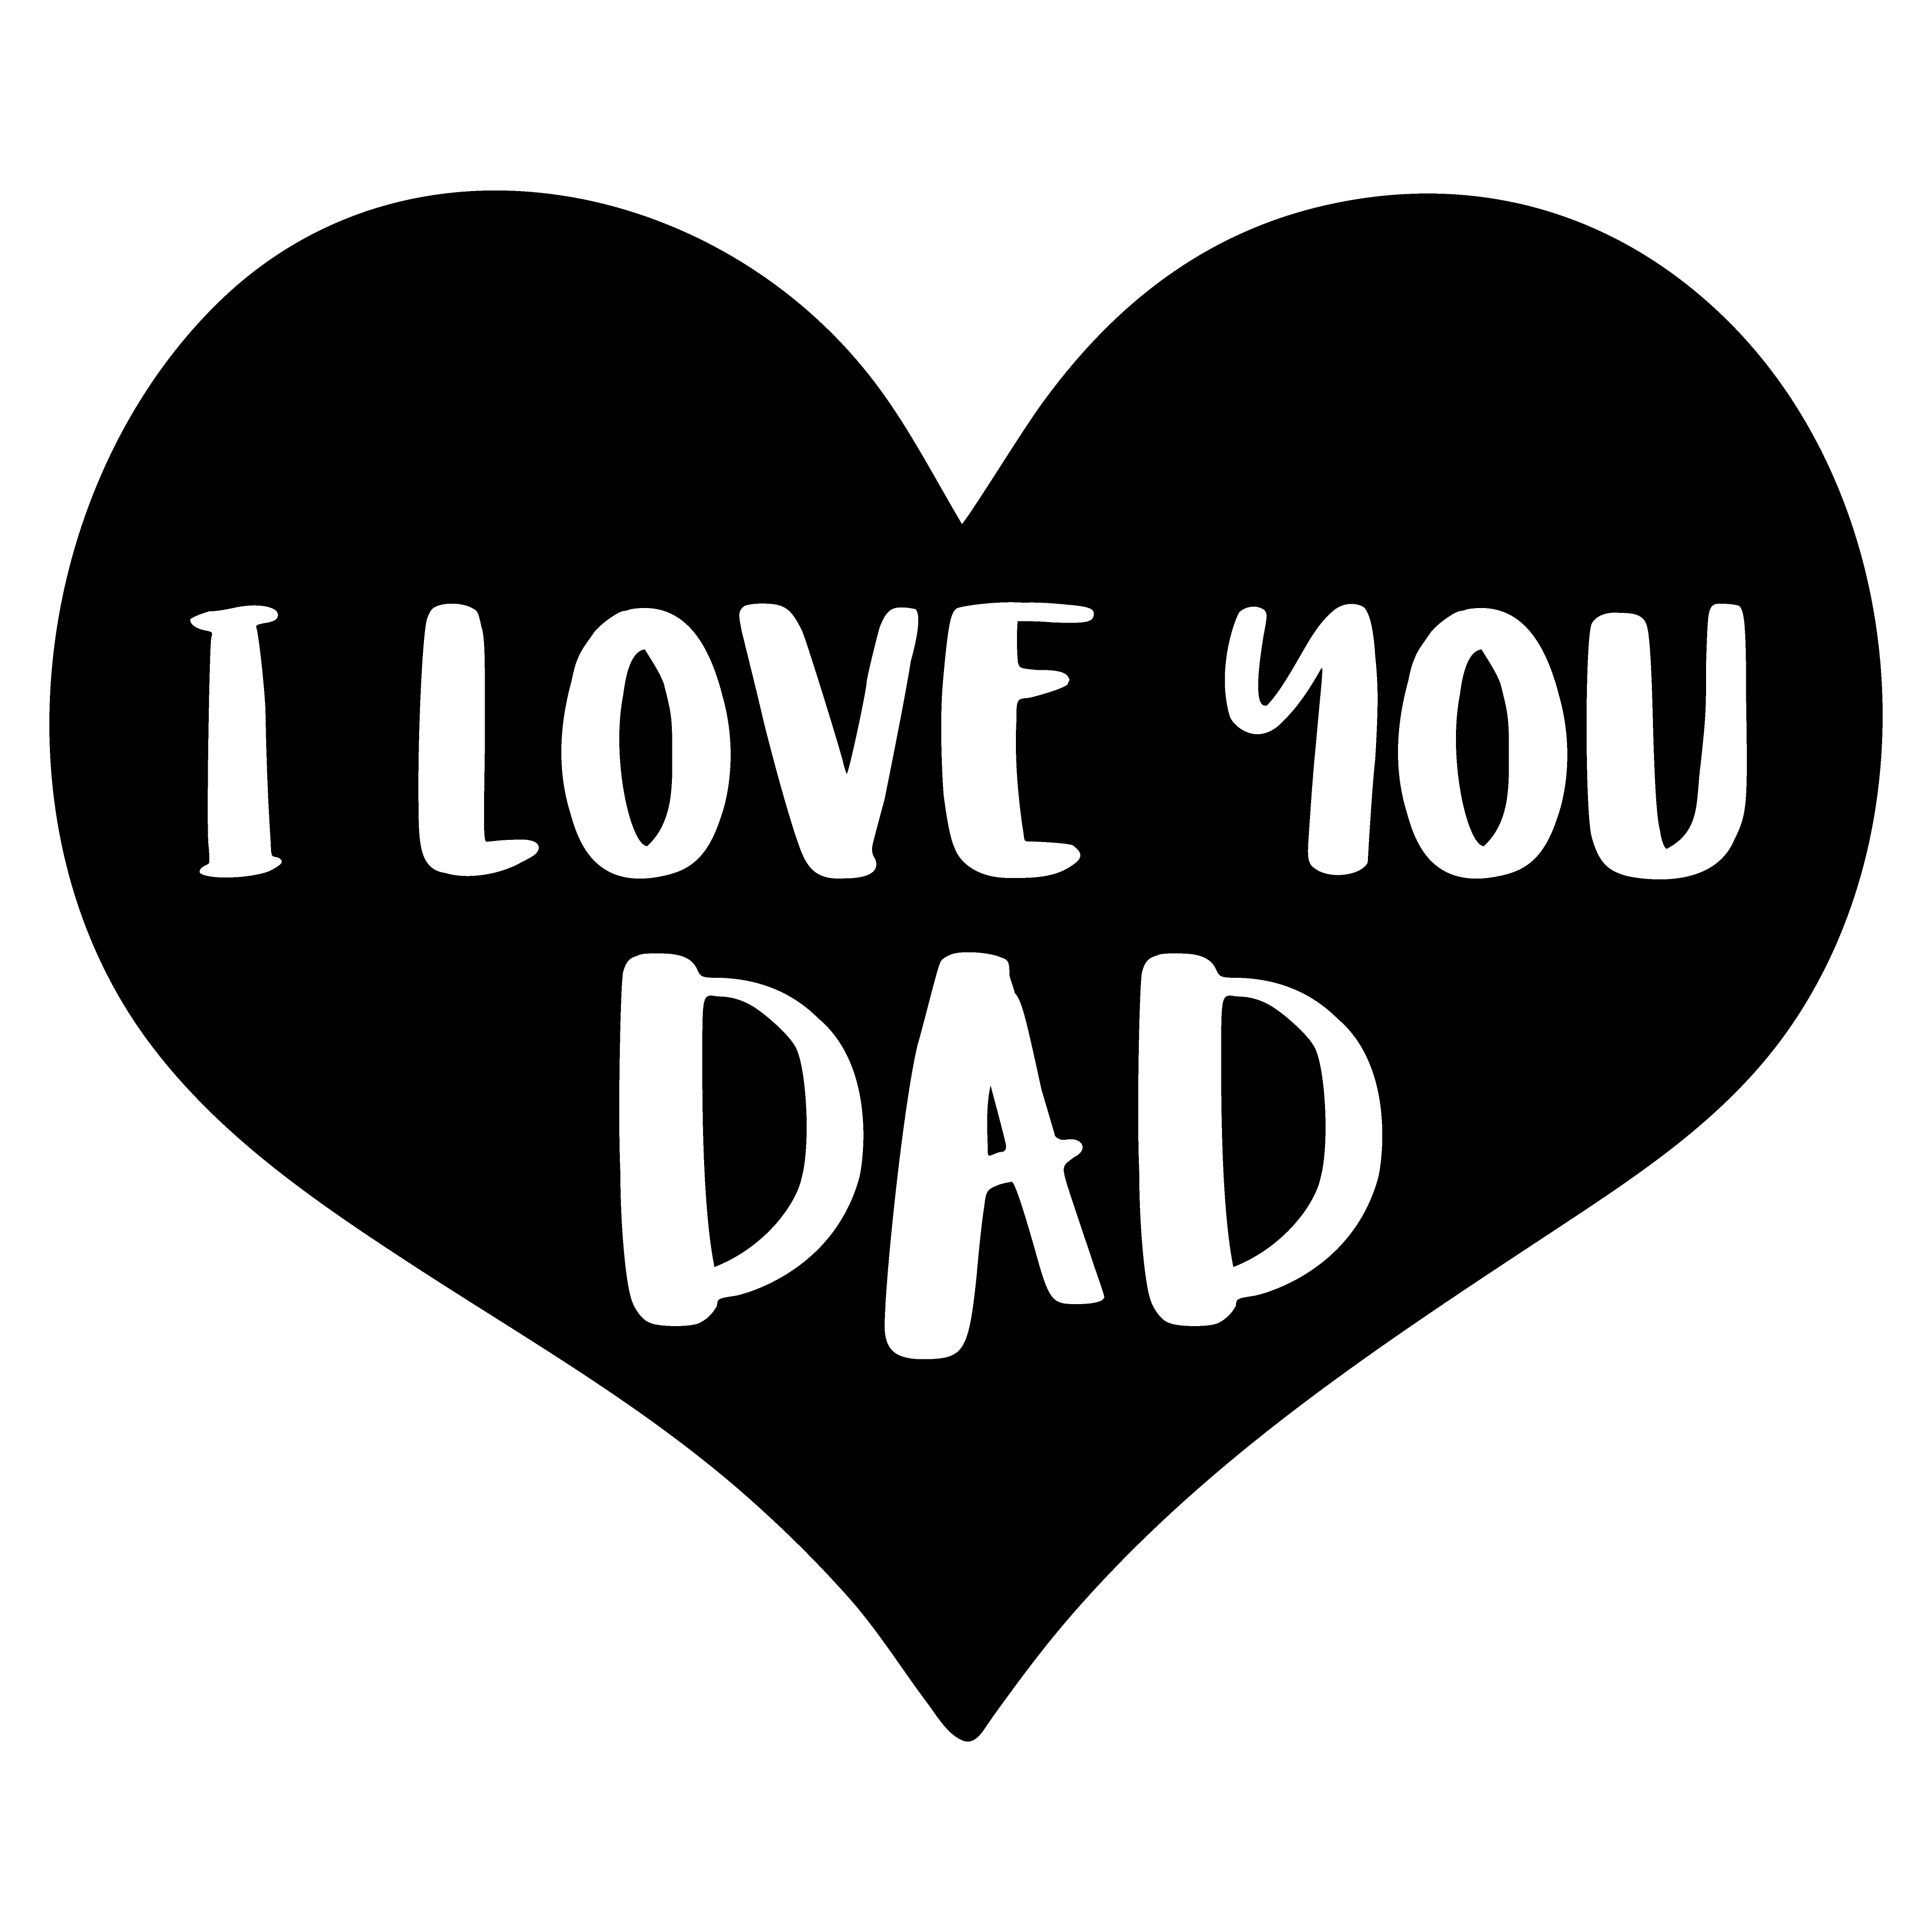 father clipart father love